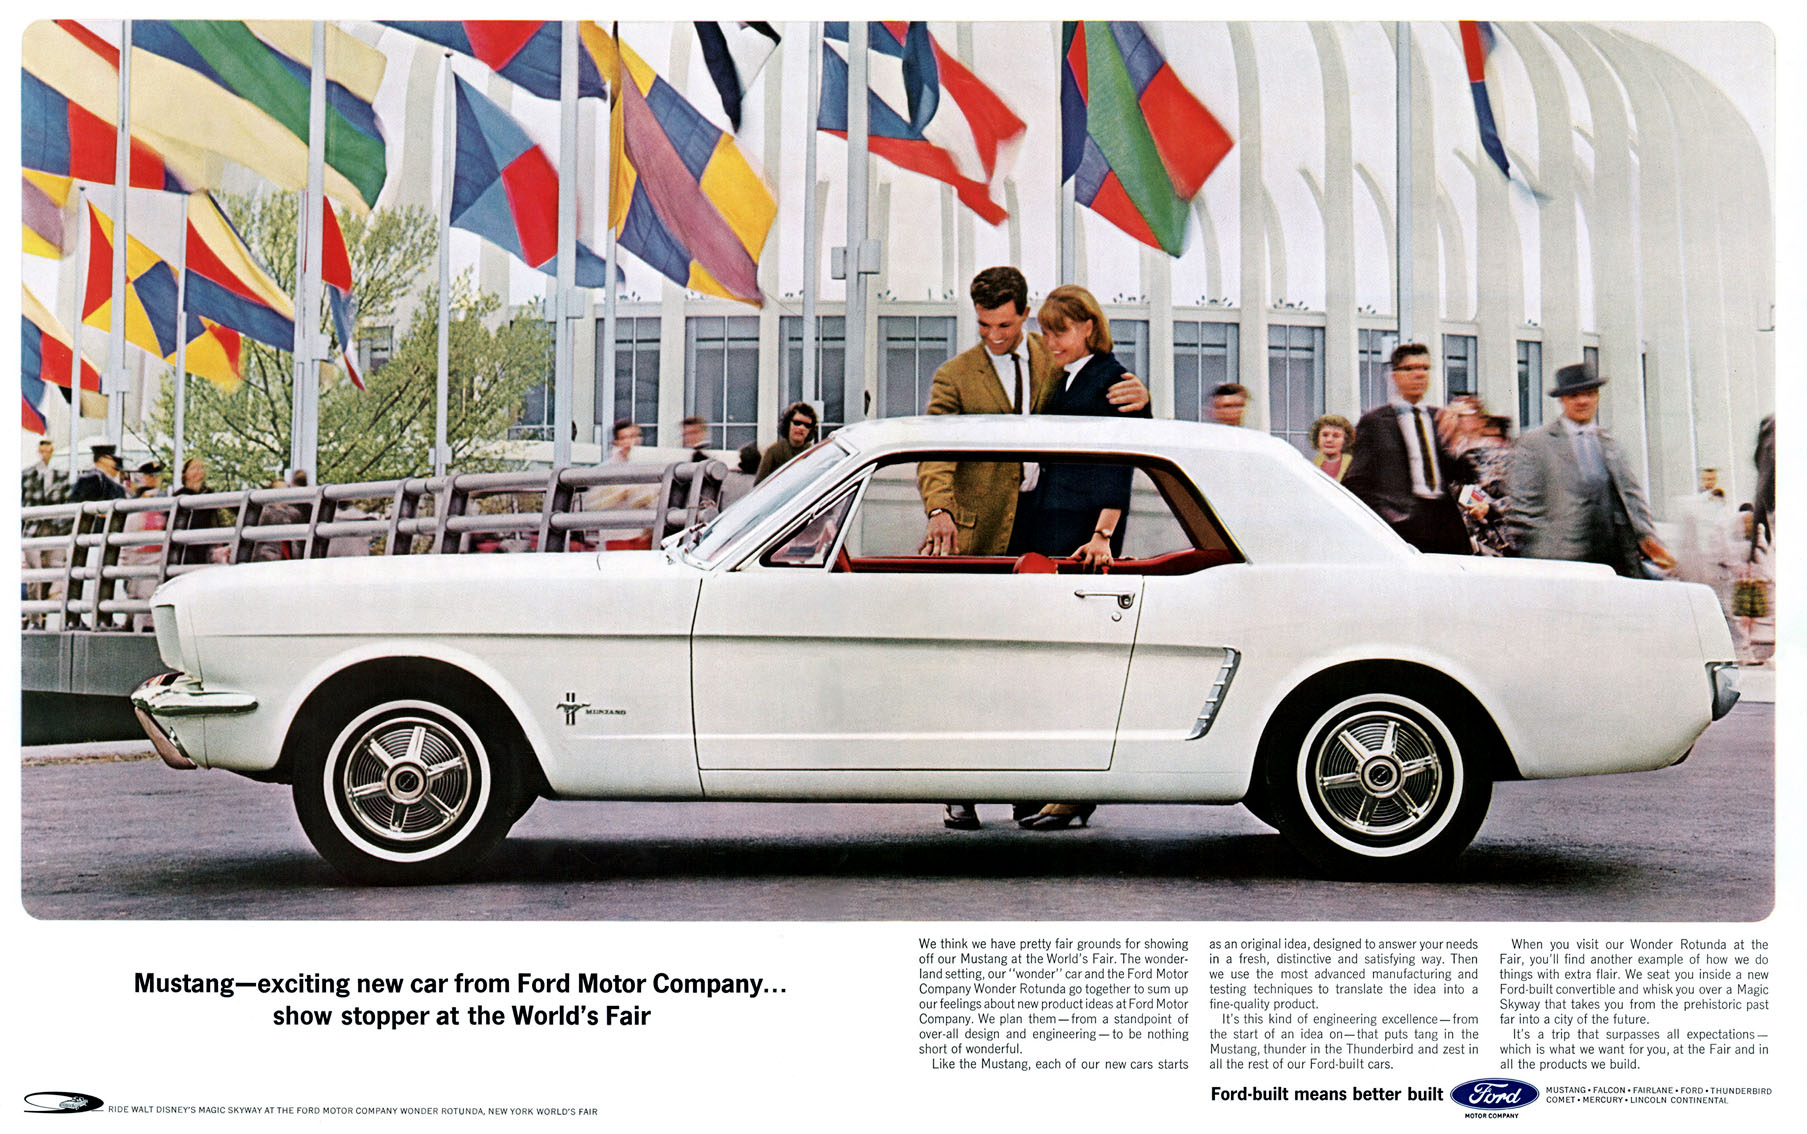 1964 Mustang - showstopper at the World's Fair